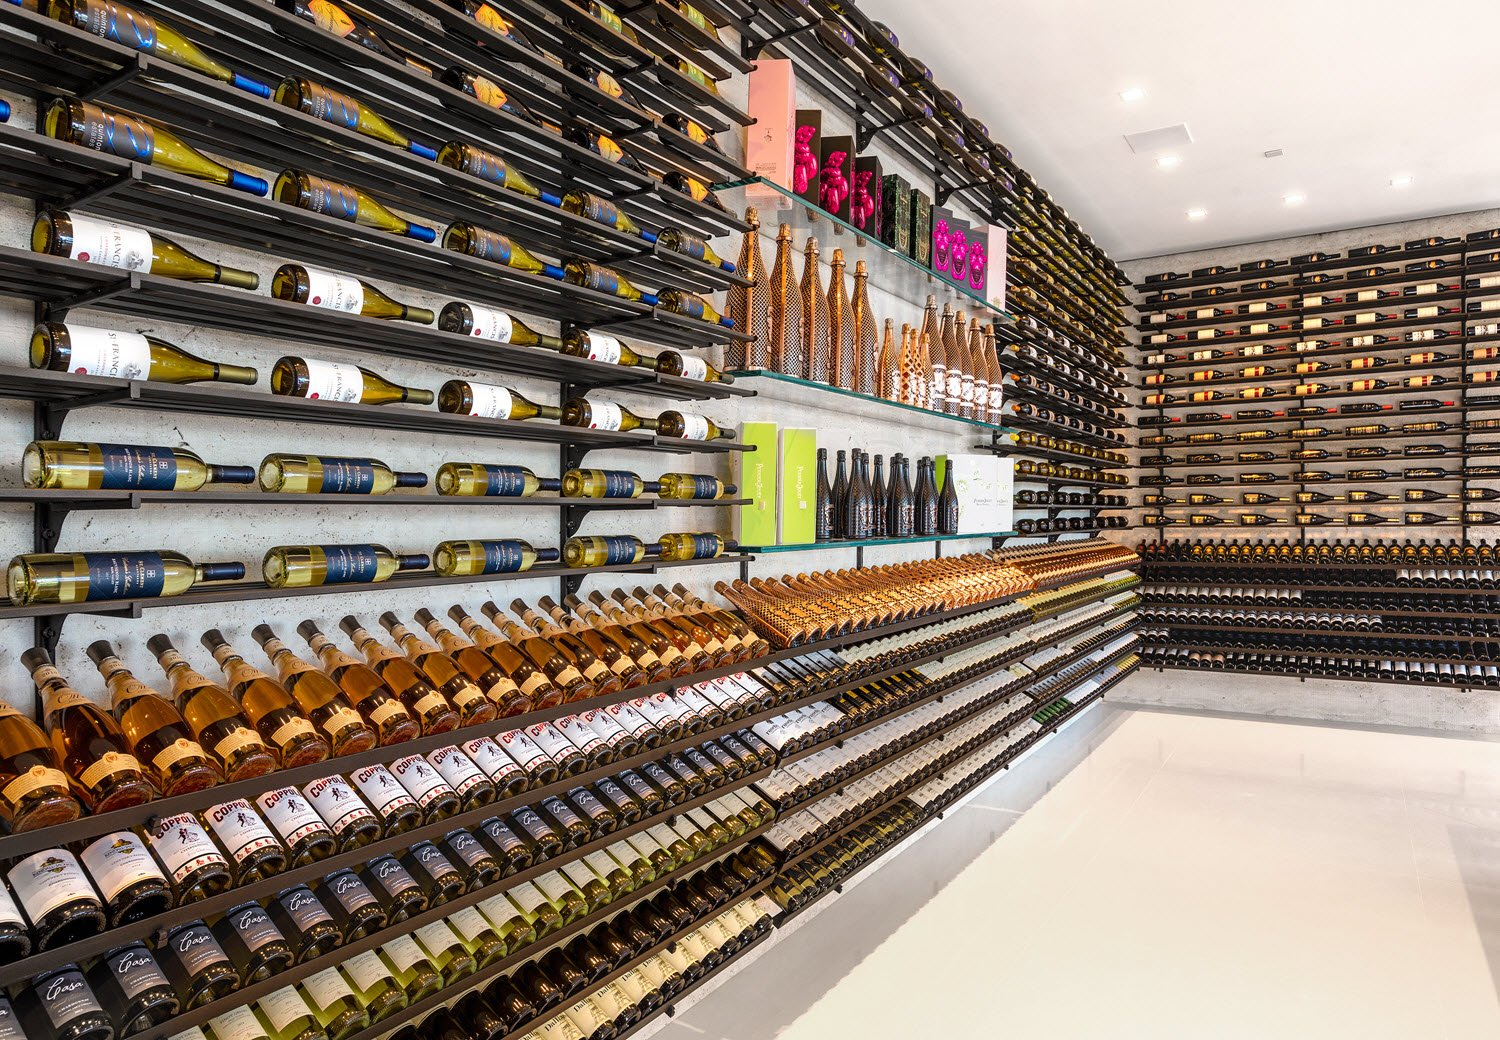 America's Most Expensive Home has 2 fully stocked Champagne and Wine Cellar